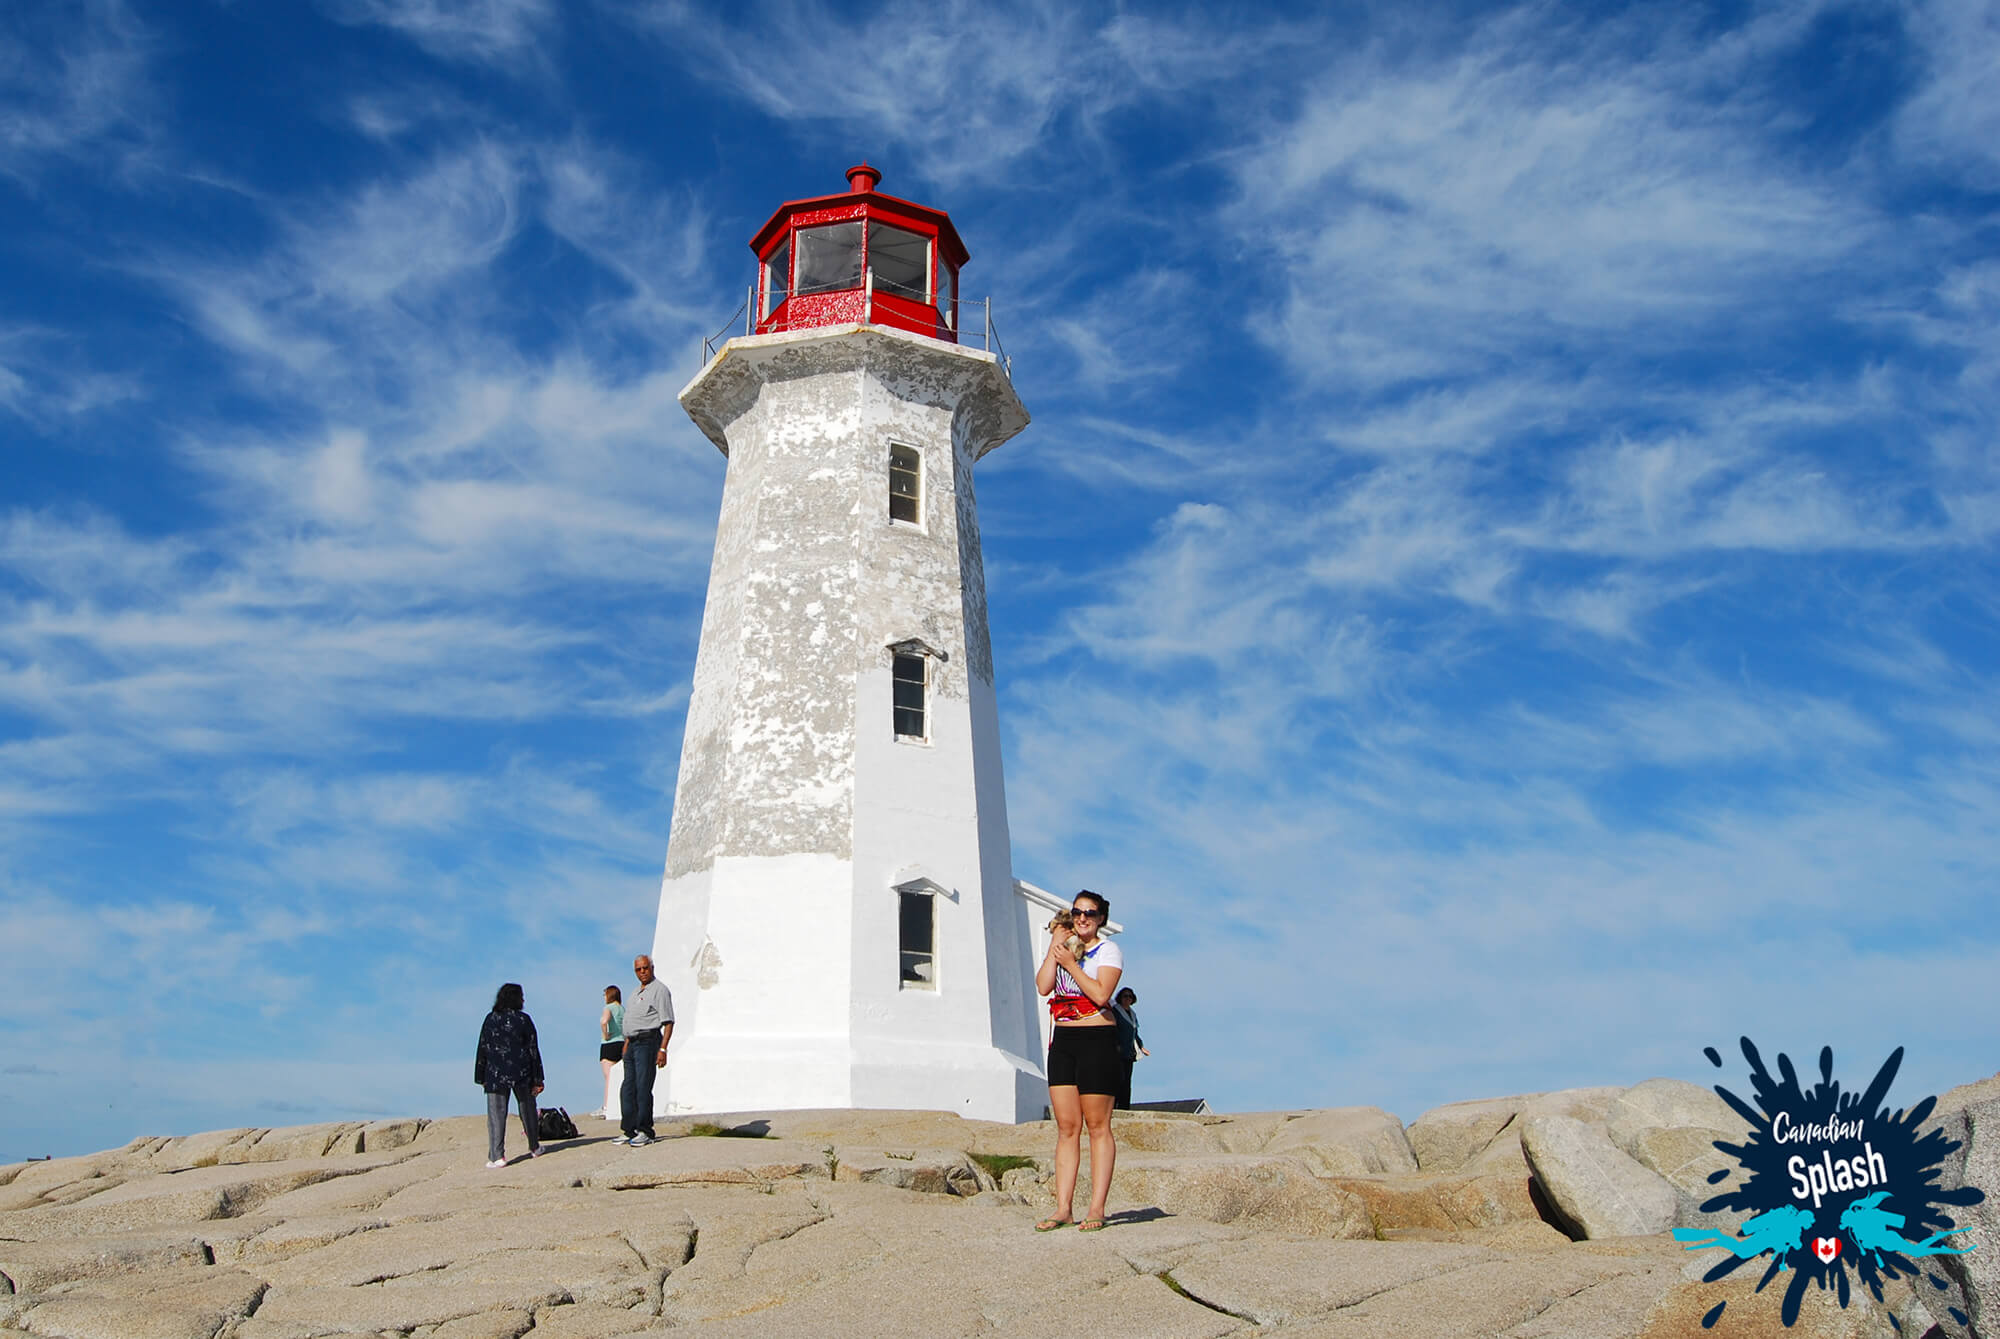 Standing At The Foot Of The Peggy's Cove Iconic Lighthouse In Nova Scotia, Canadian Splash